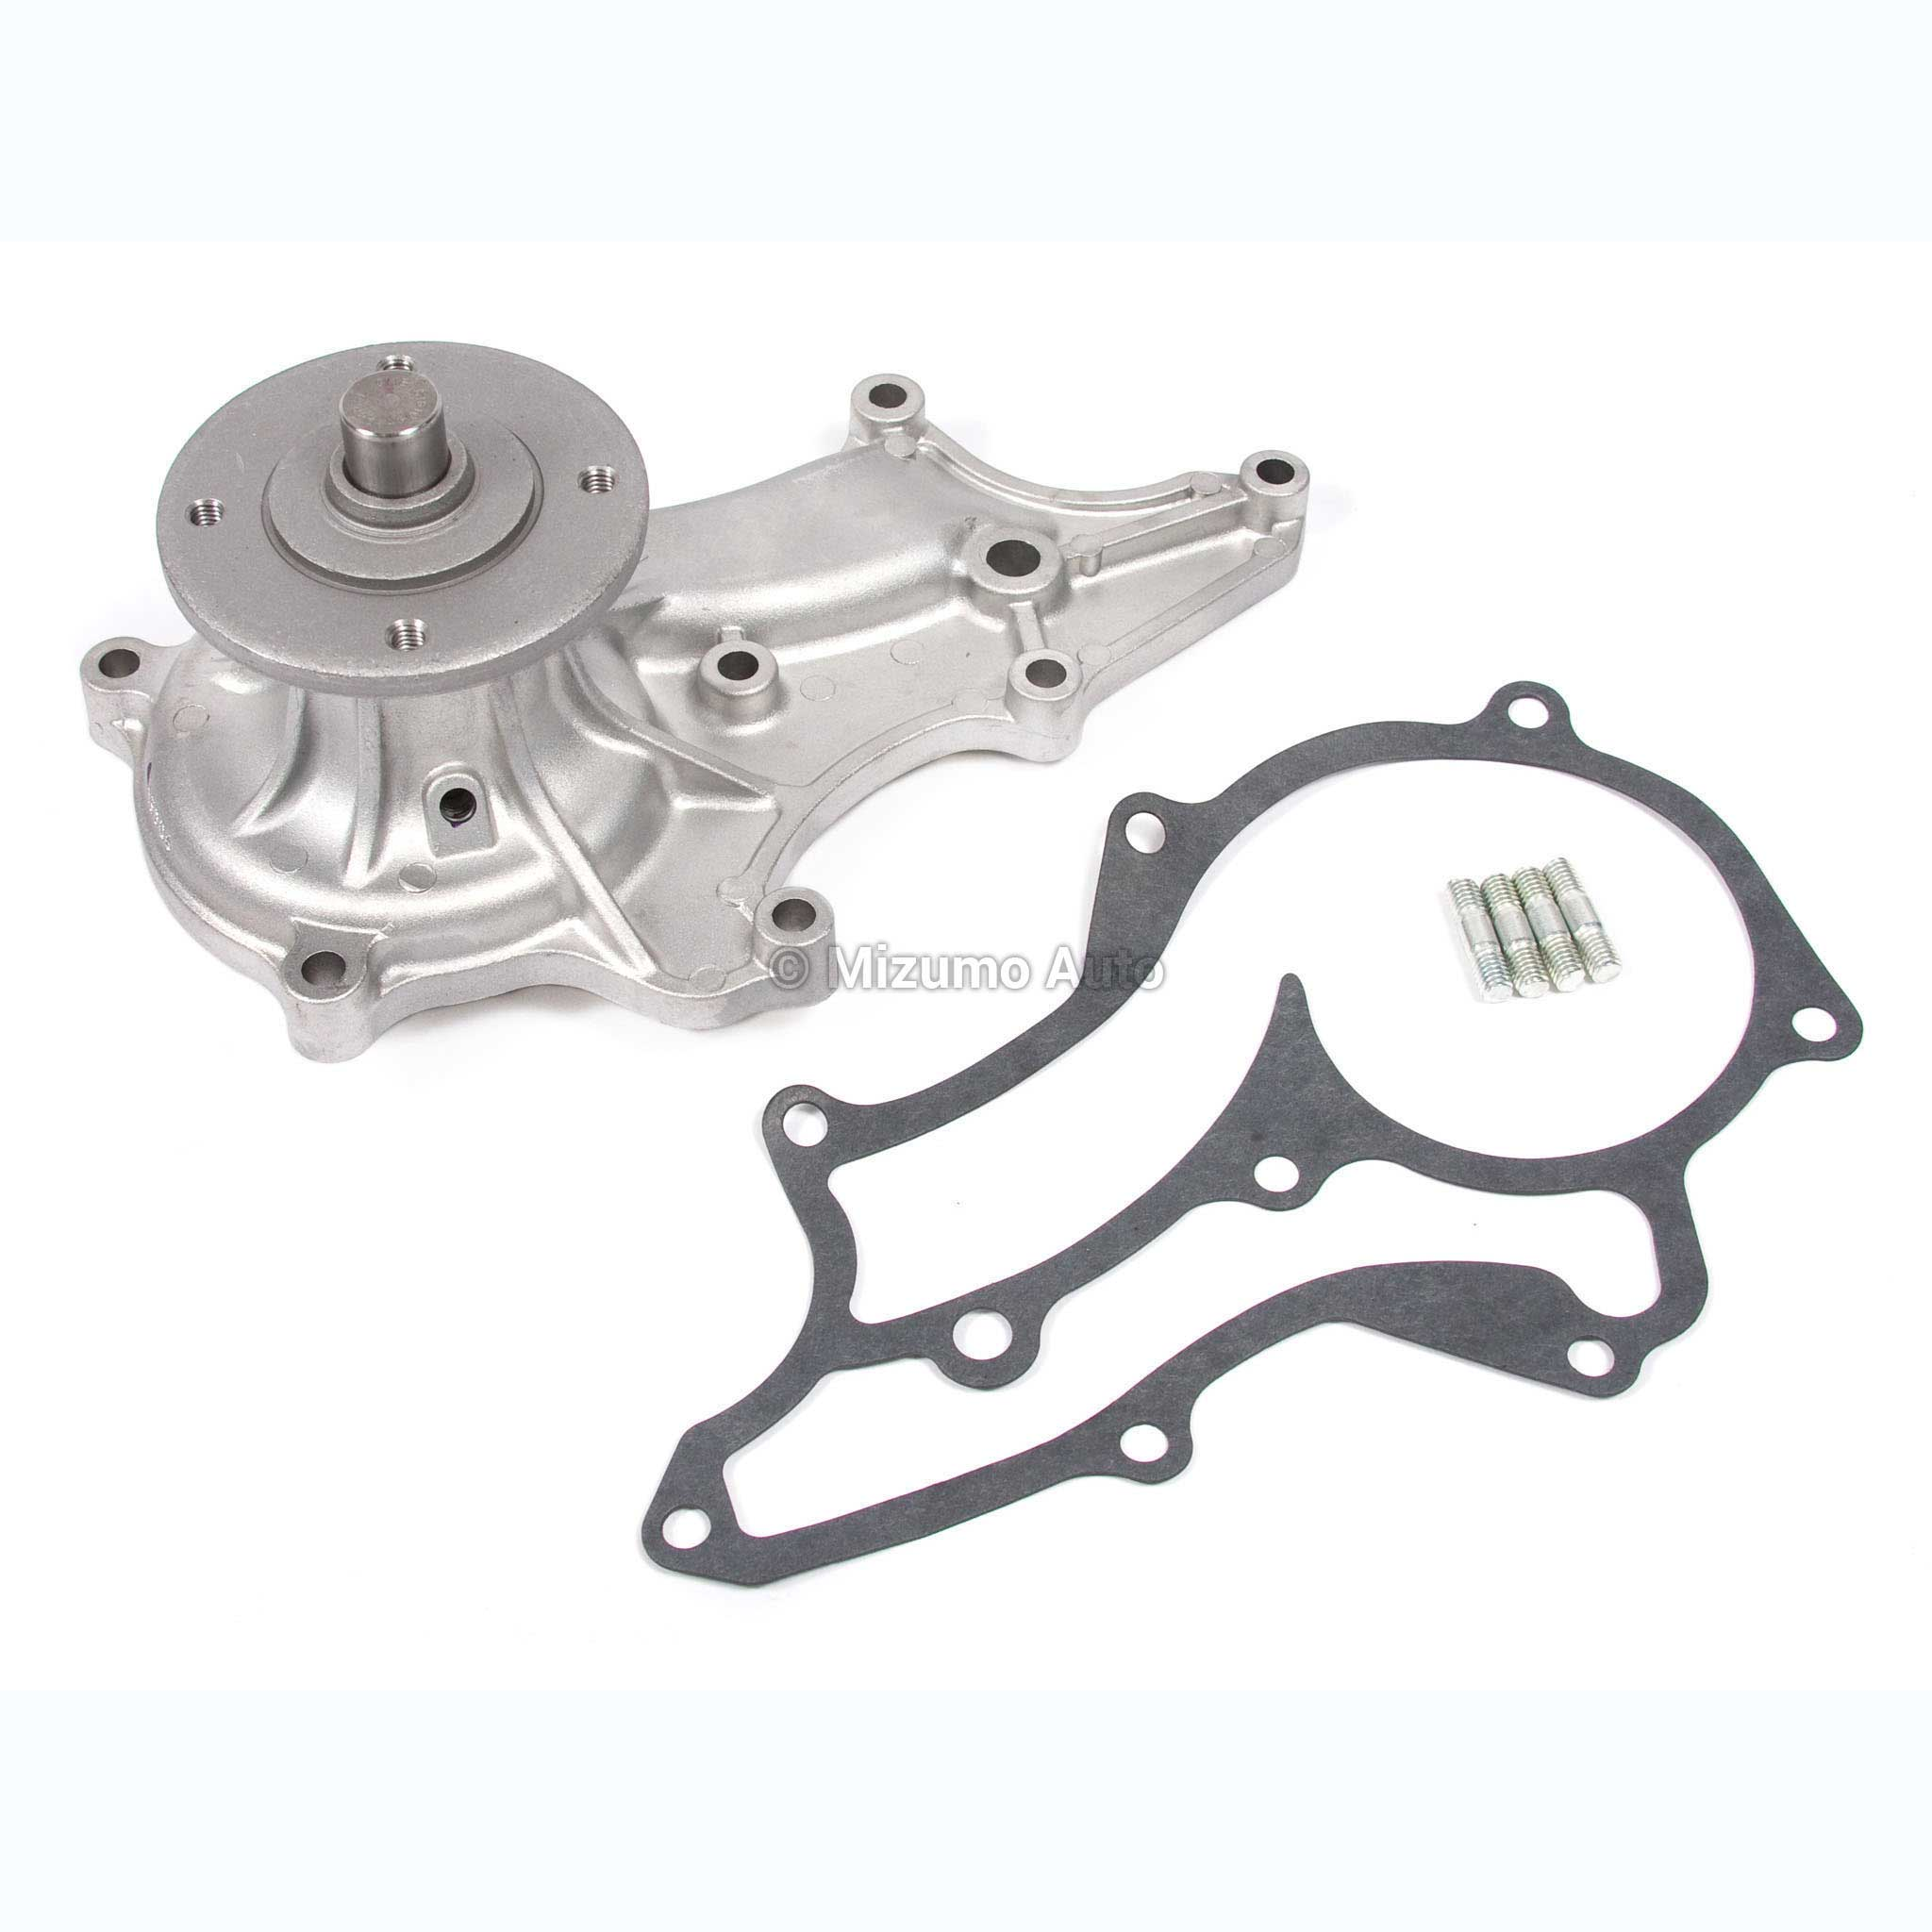 Fit 85 95 Toyota 22r 22re Water Pump Timing Chain Kit W